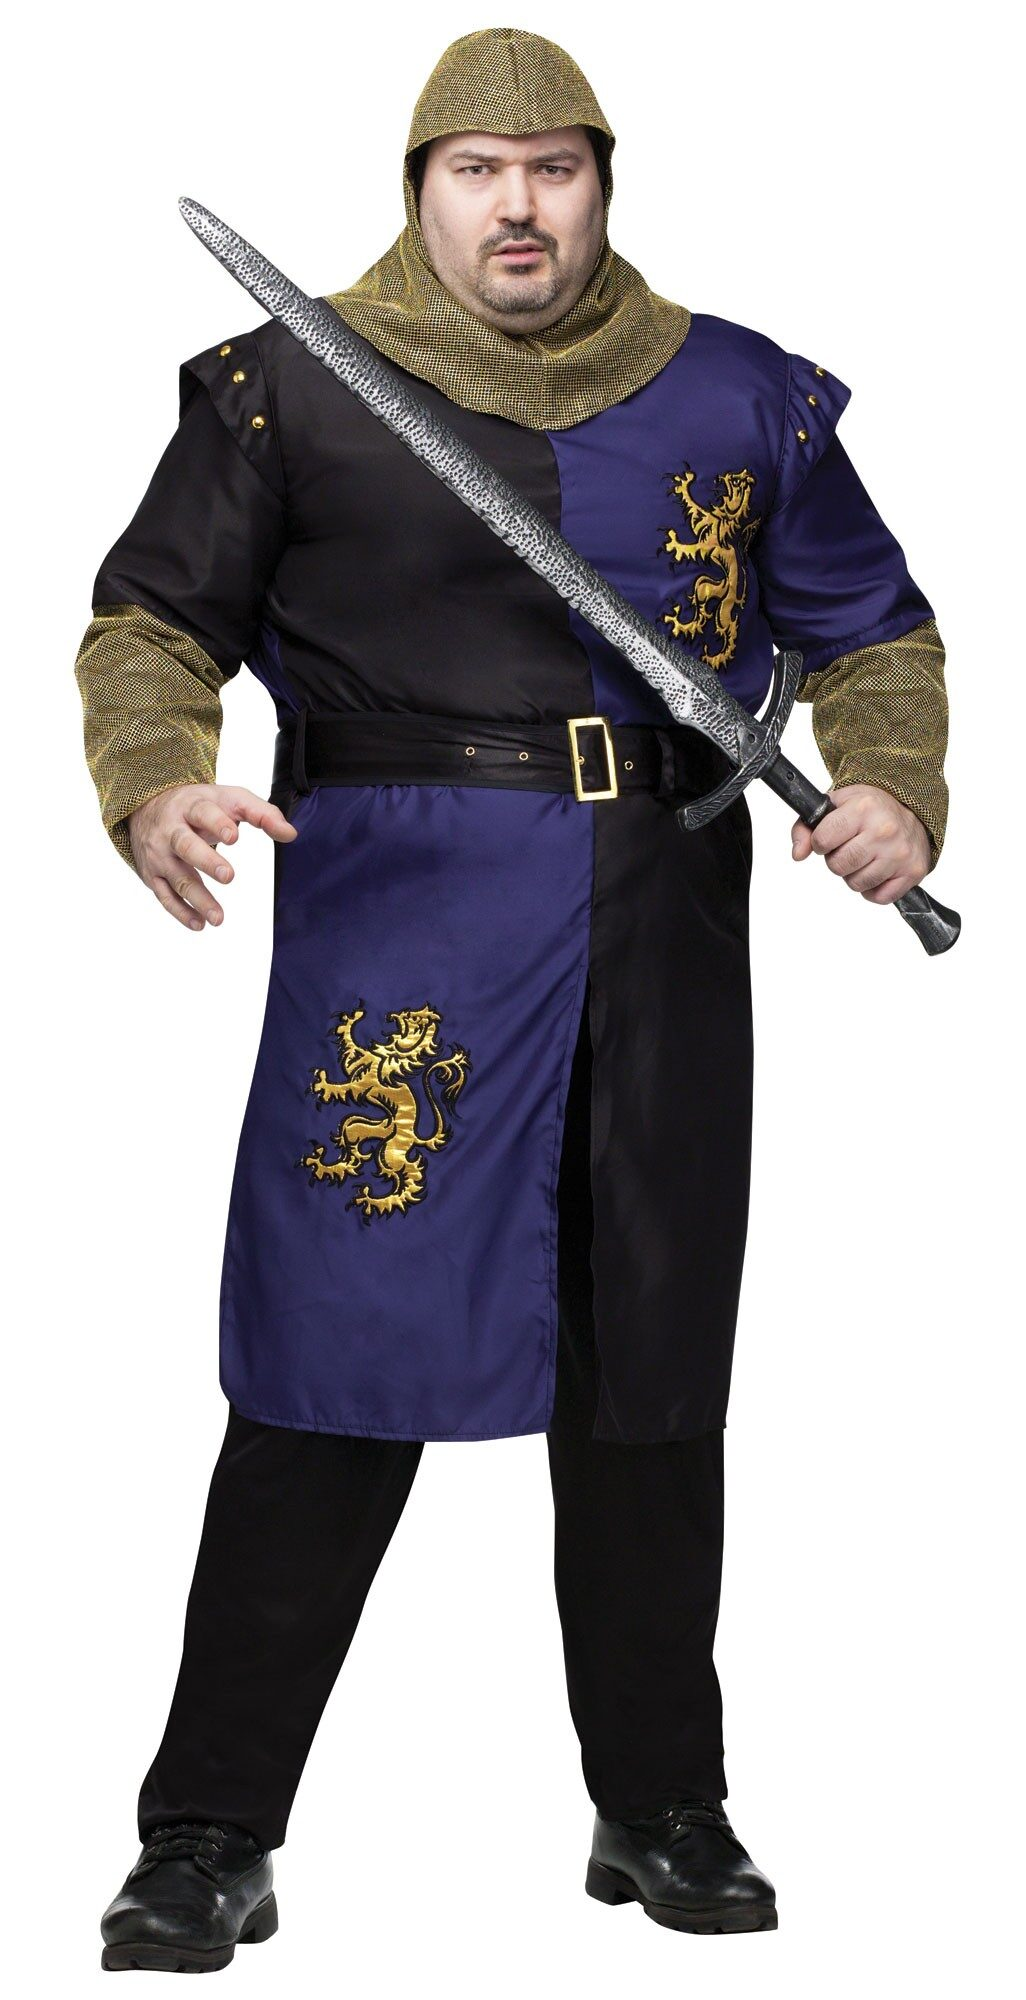 Medieval Renaissance Knight Plus Size Costume - Mr. Costumes